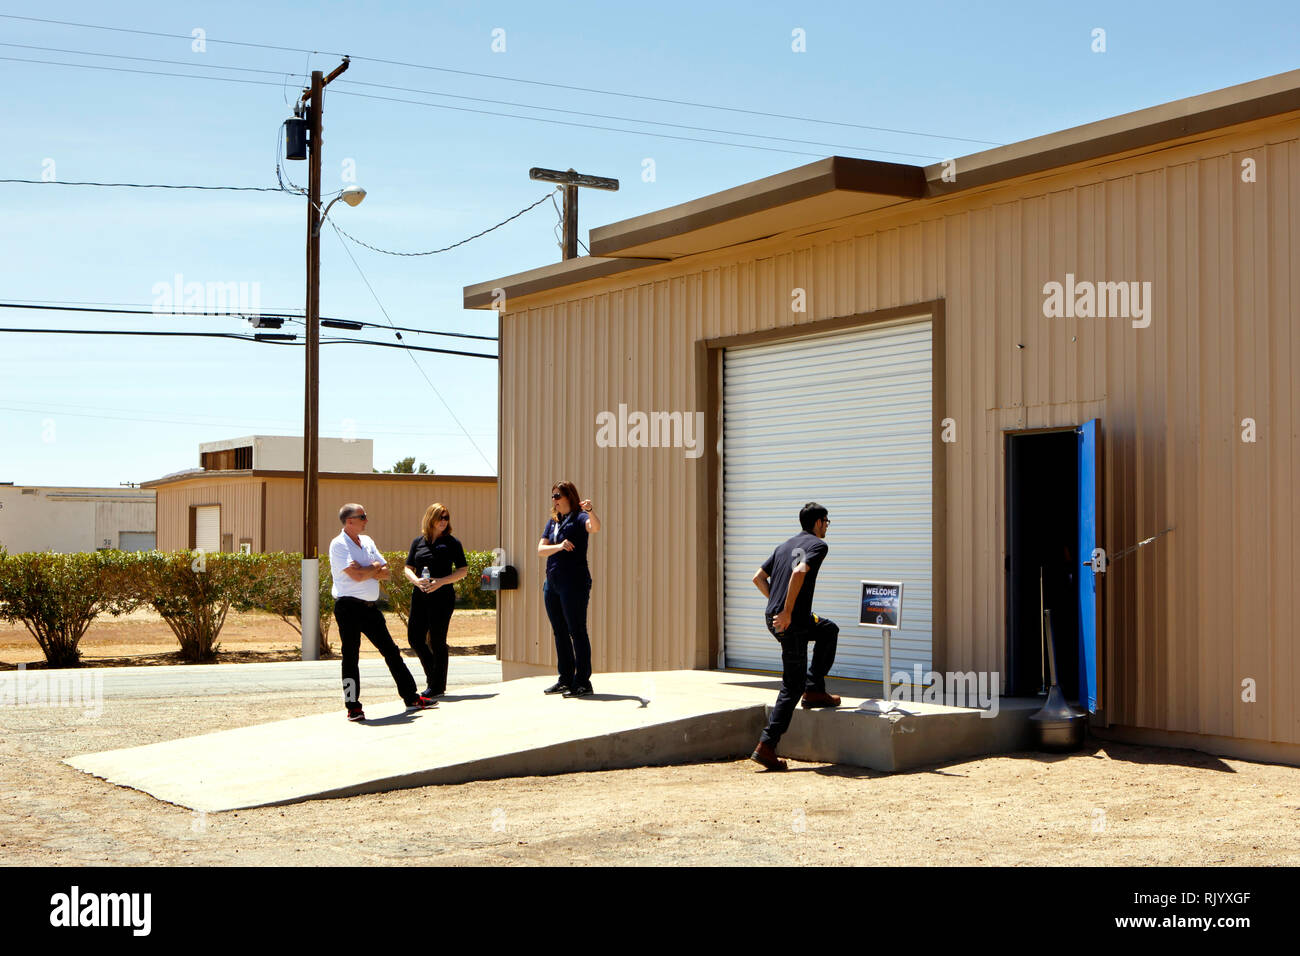 At the Mojave air and space port XCOR aerospace is opening their doors for a visit of future astronauts and business partners. - Stock Image